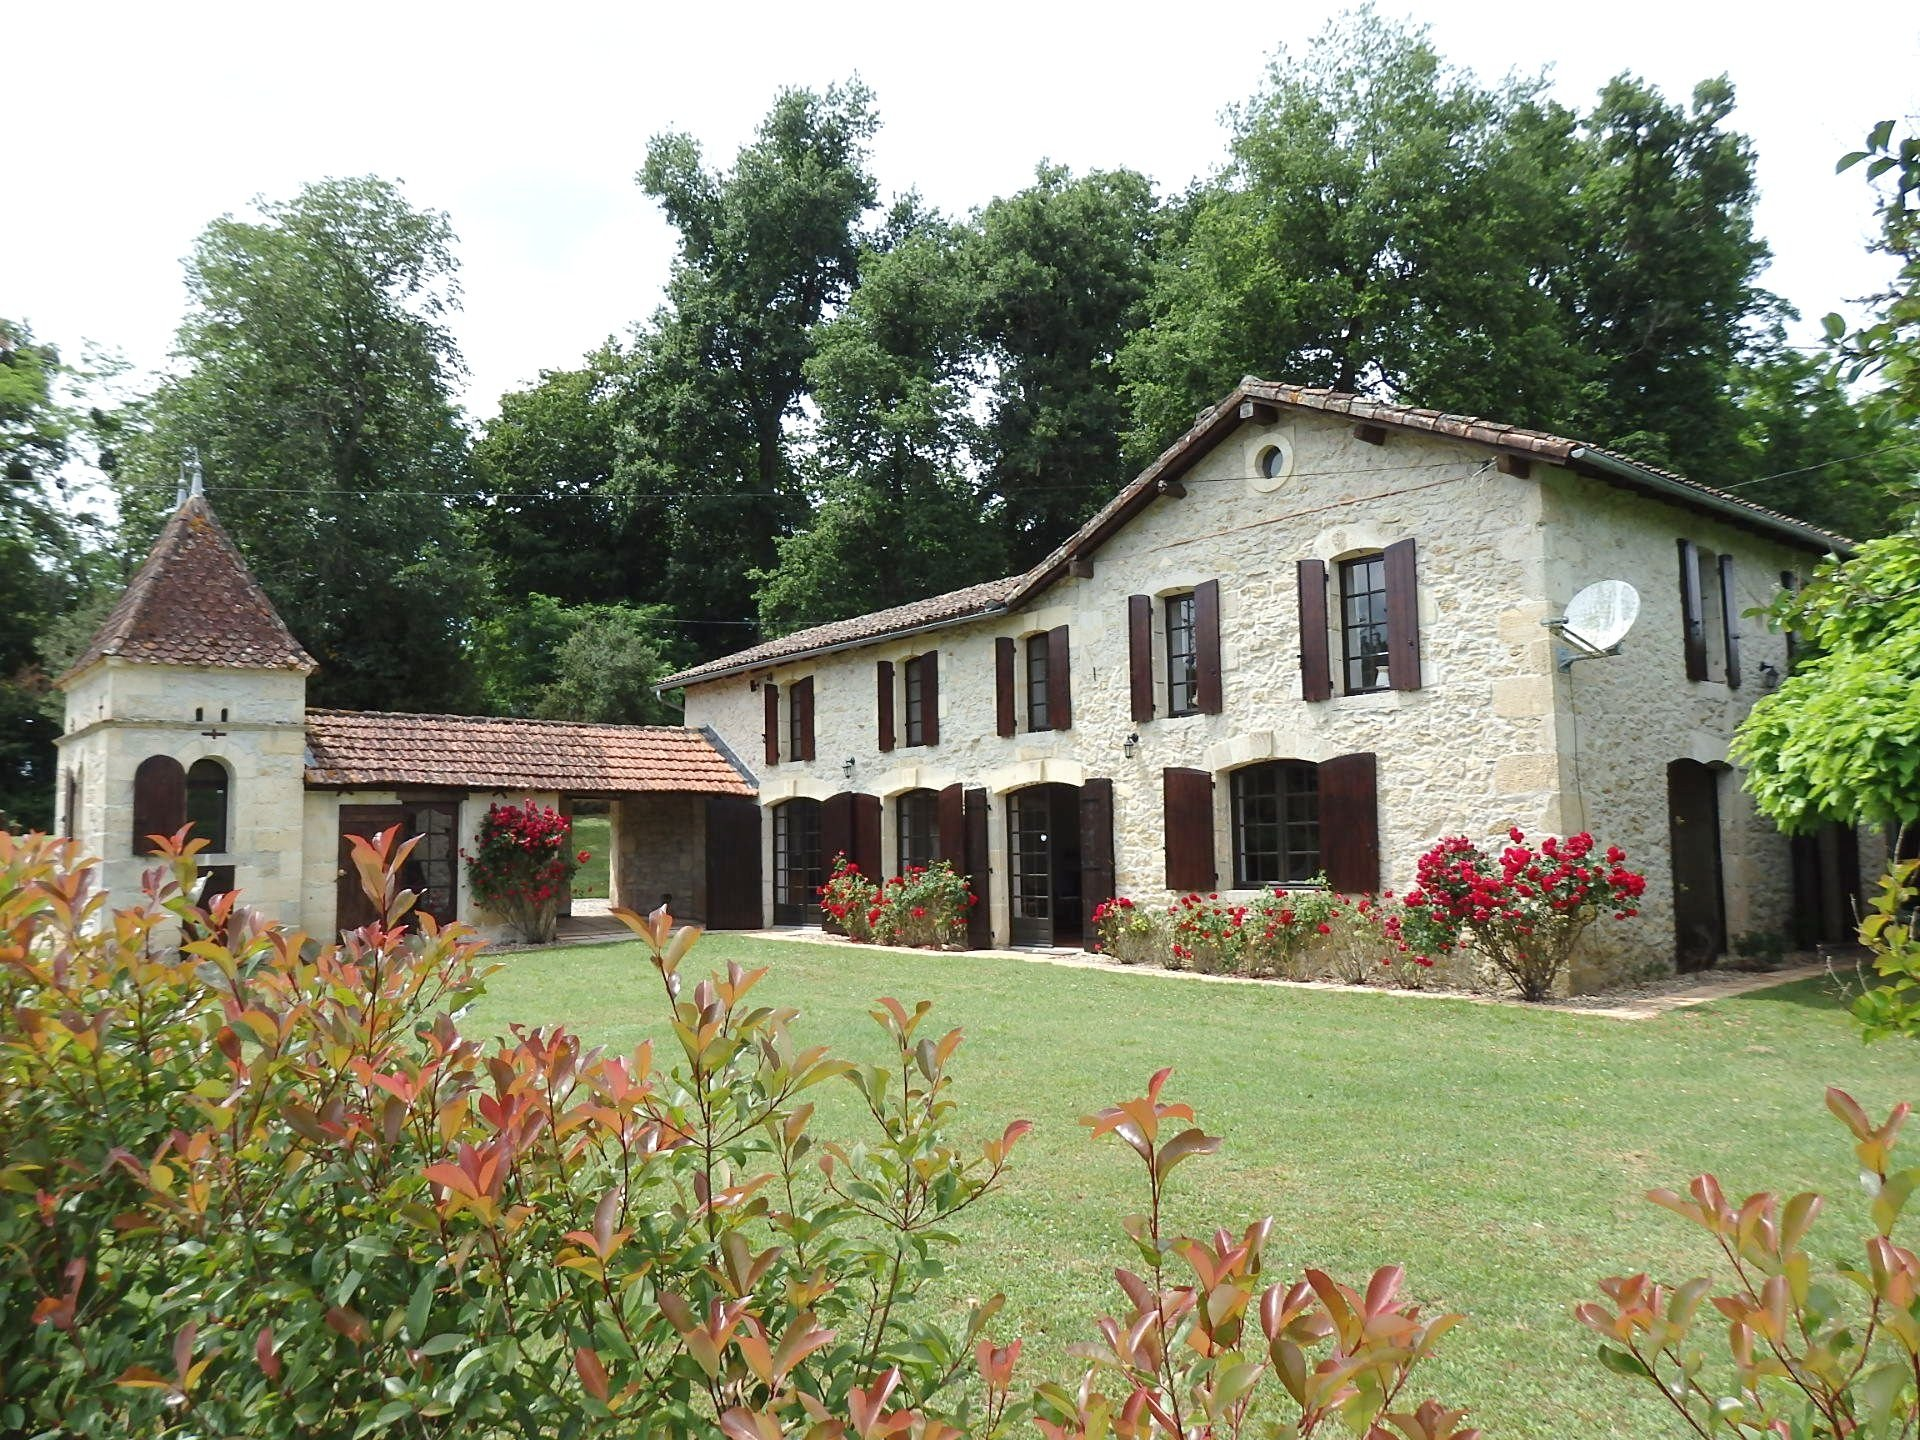 A beautiful stone house in turn key condition